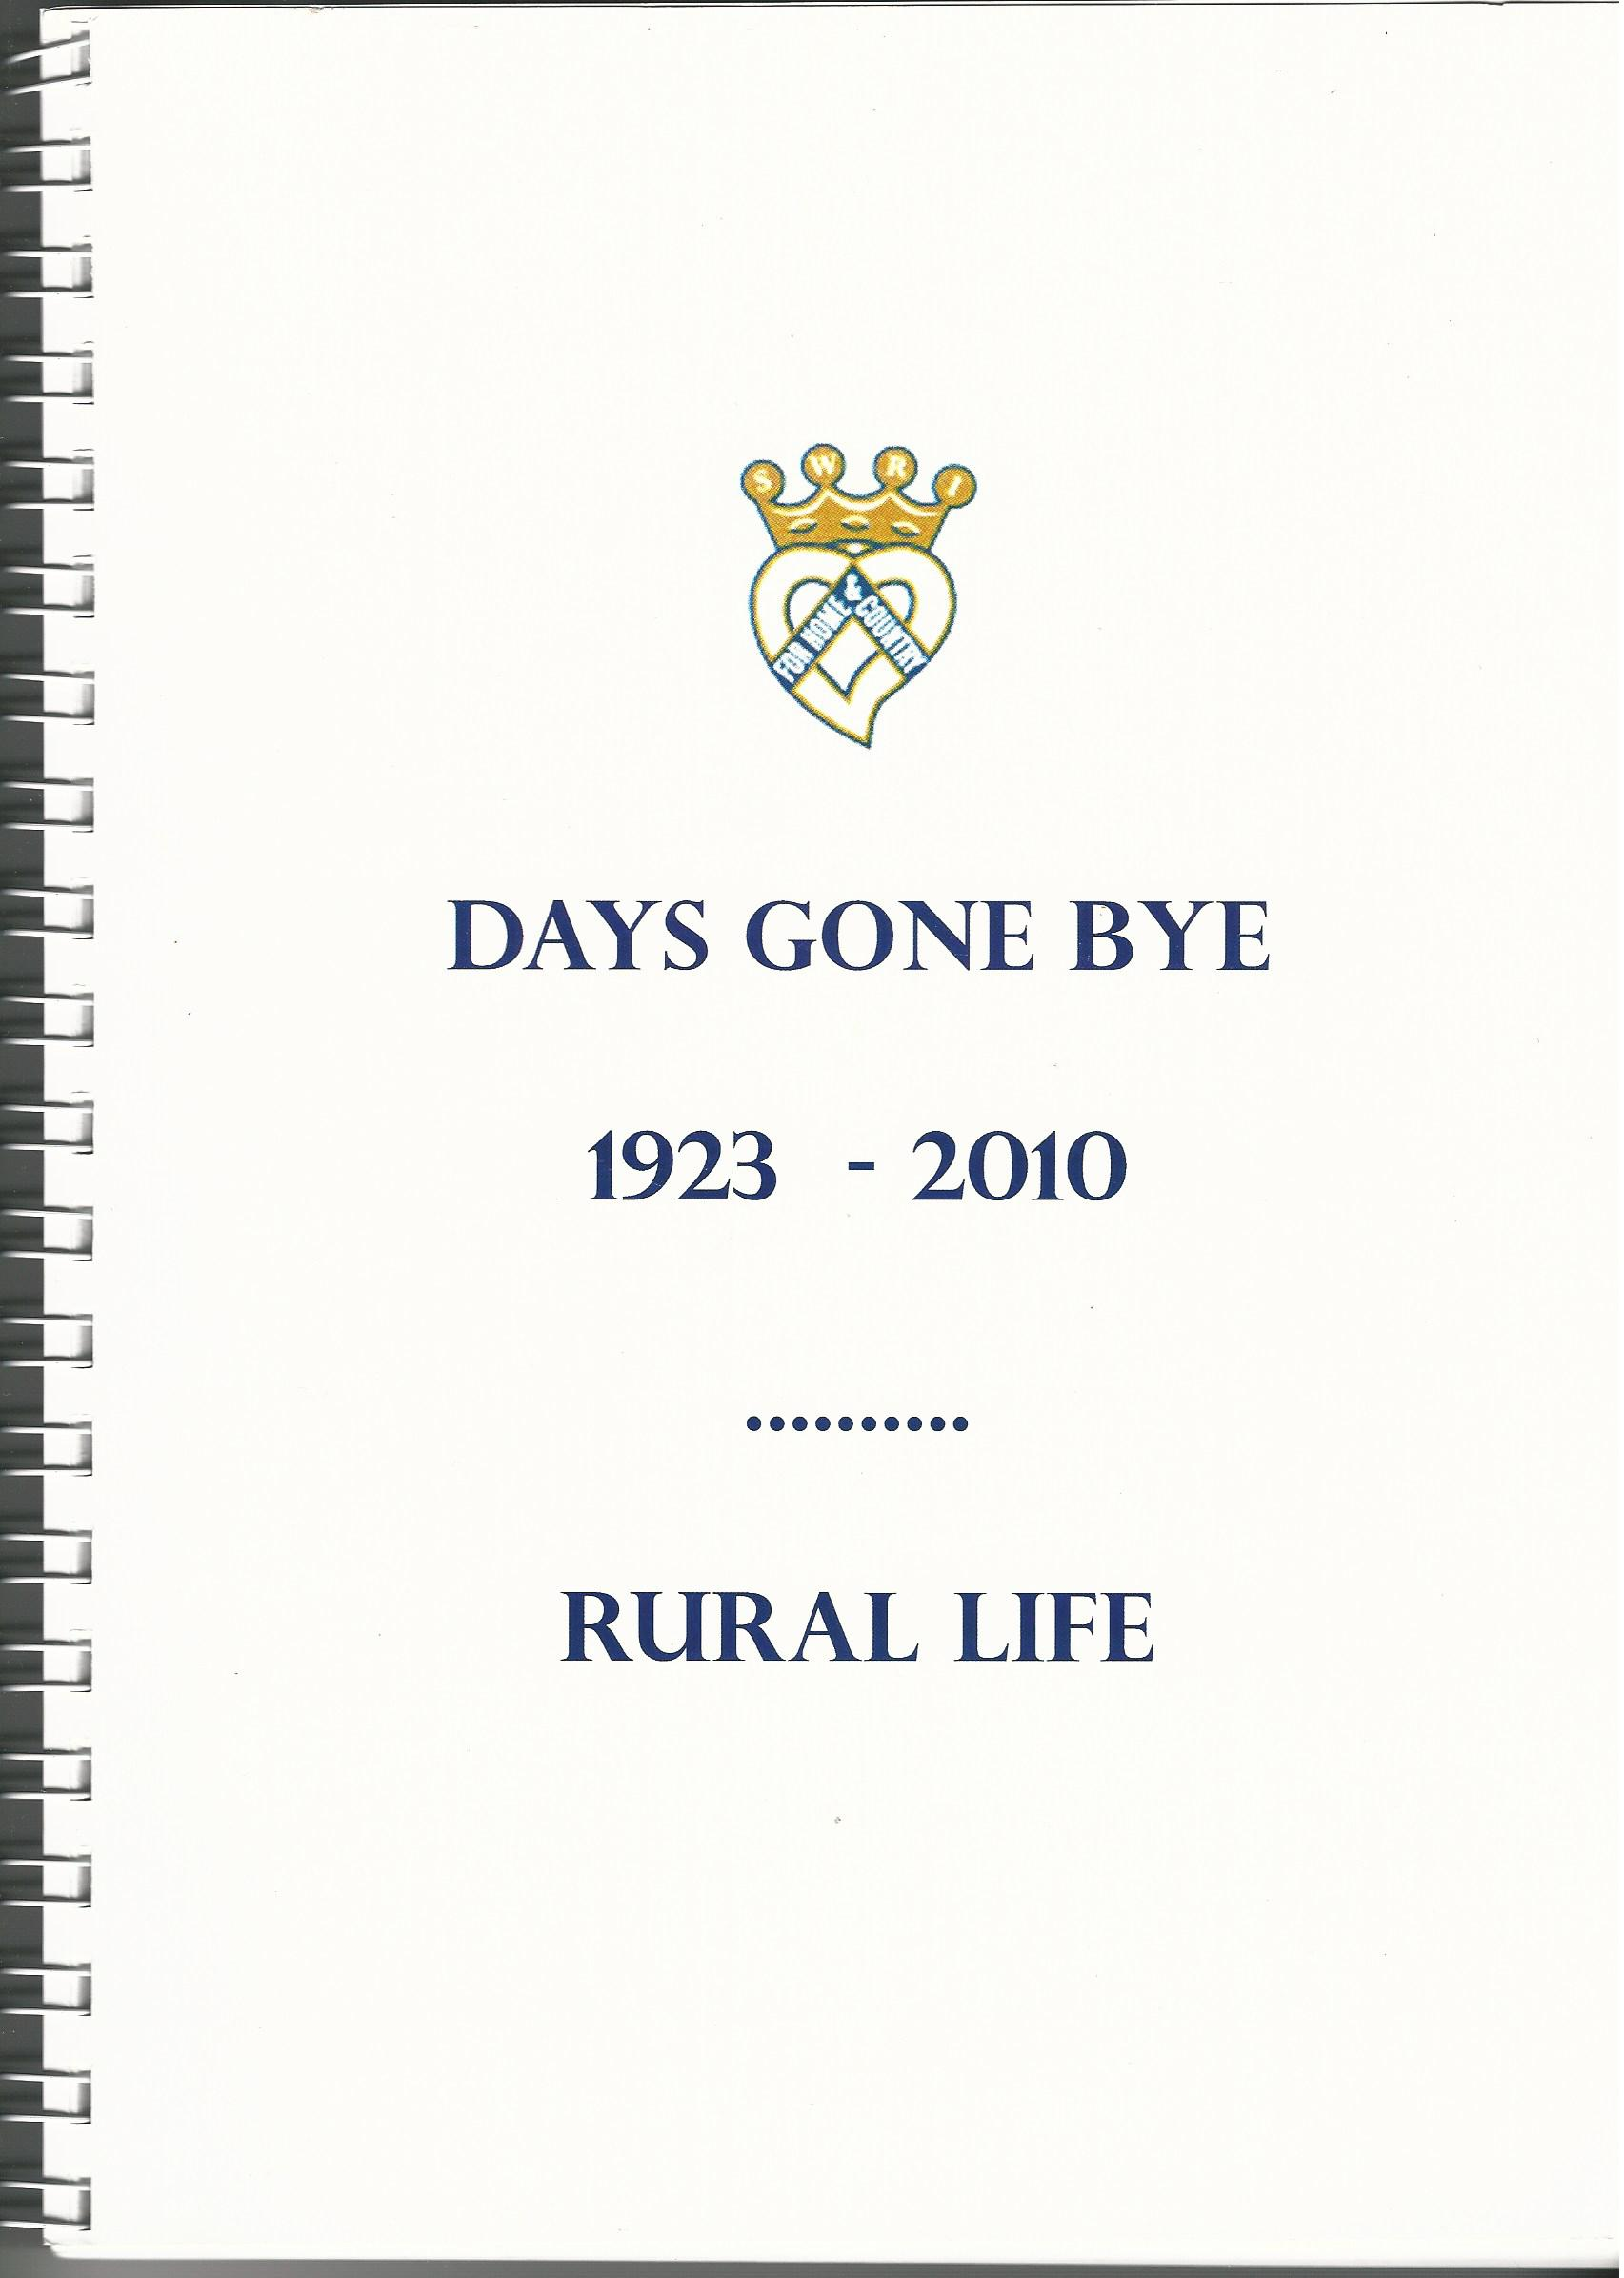 Image for Days Gone Bye 1923-2010 Rural Life